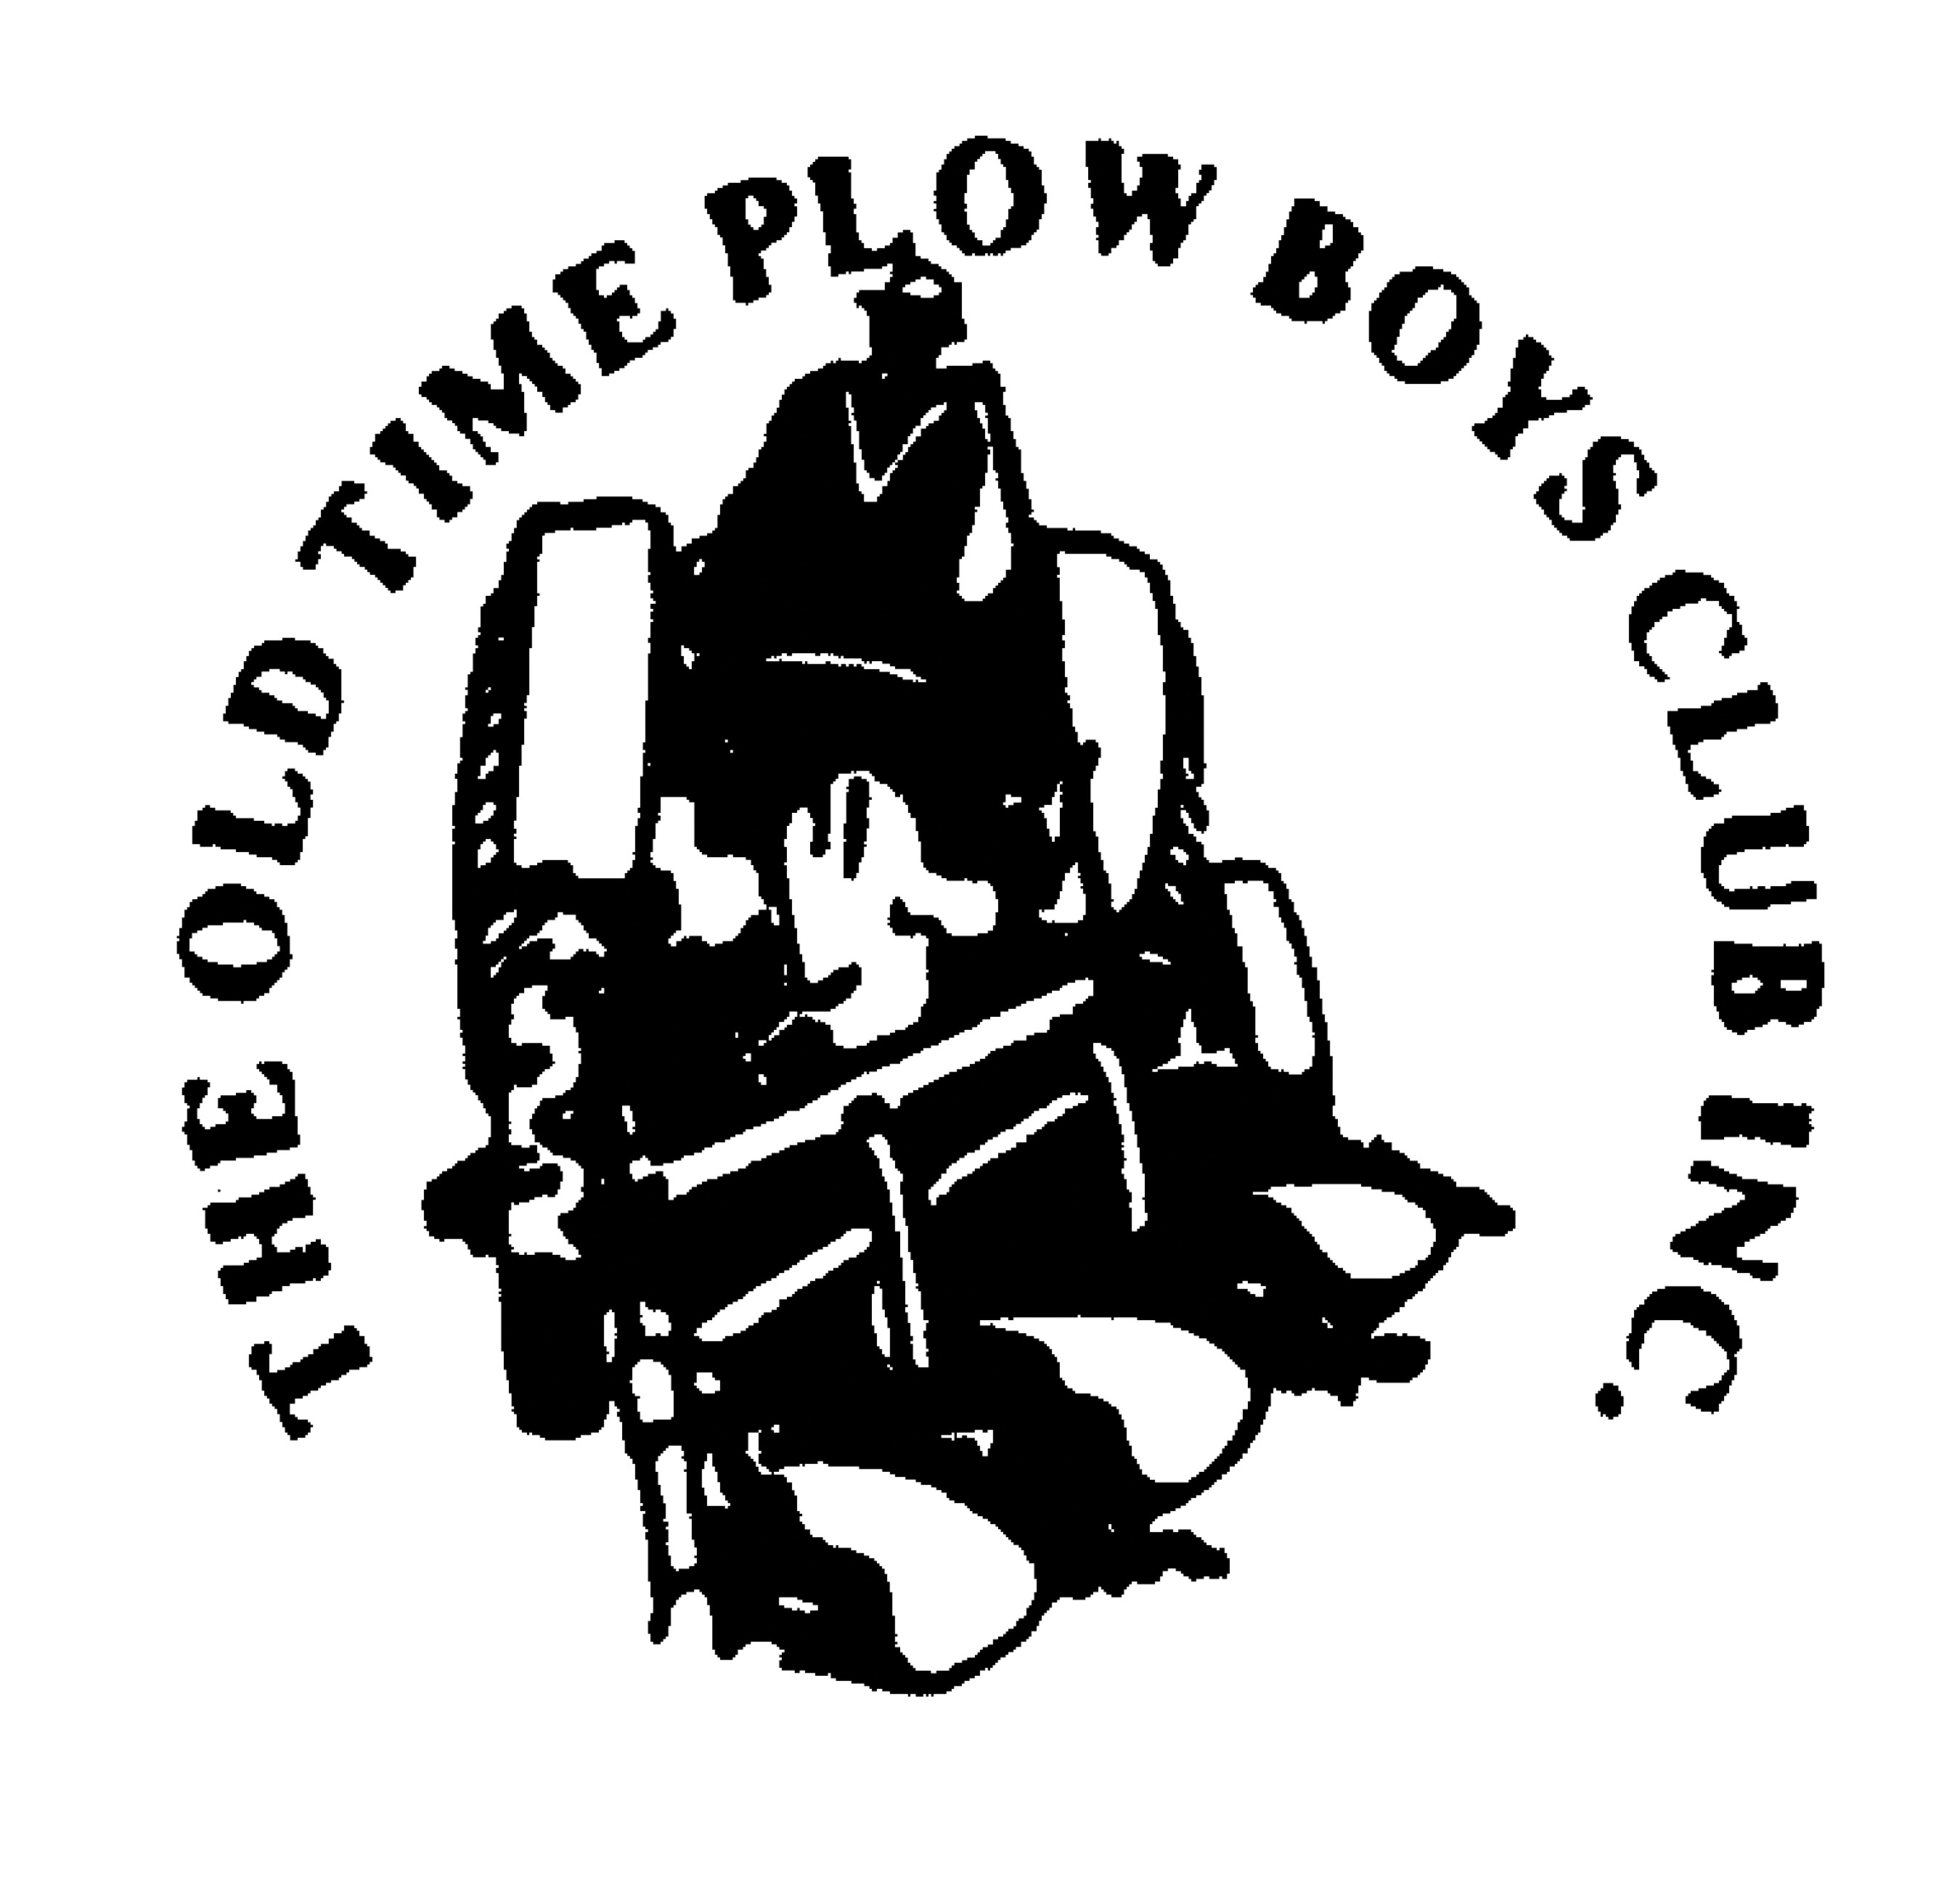 The Old Time Plow Boys logo, featuring a vector of a man on a tractor with a plow